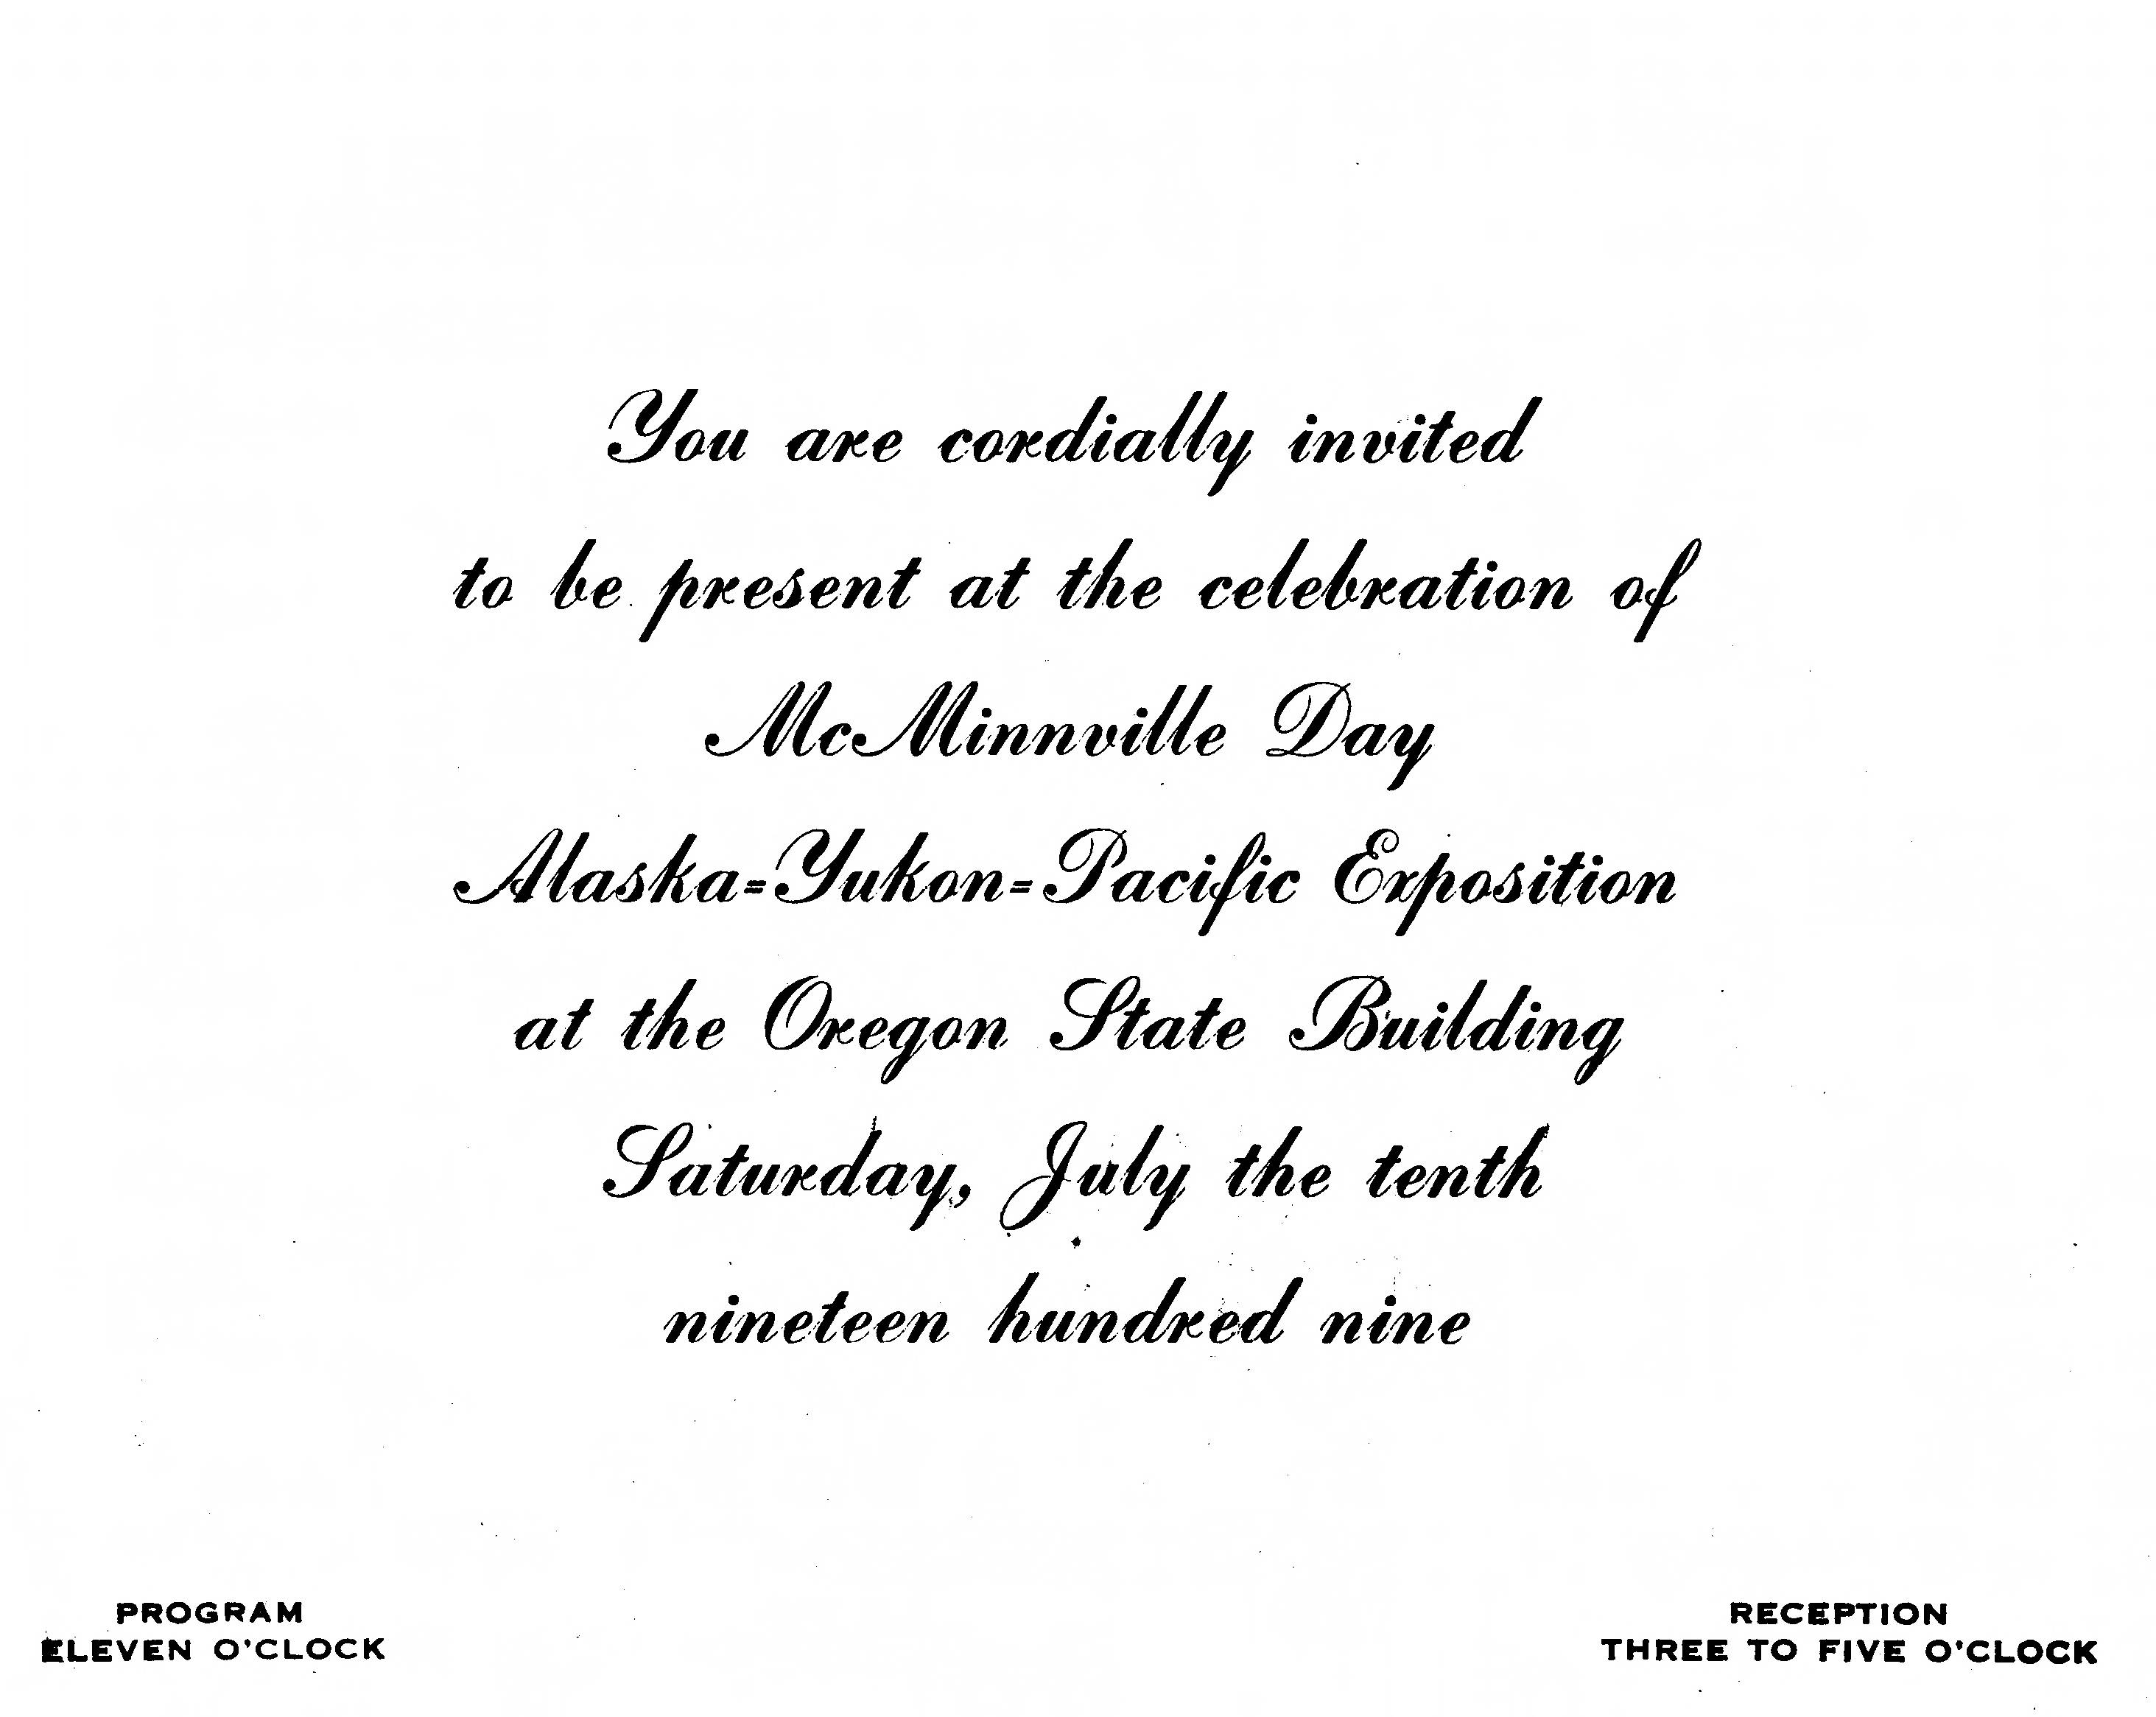 Invitation to the celebration of McMinnville Day at the Oregon State Building on 10 July 1909